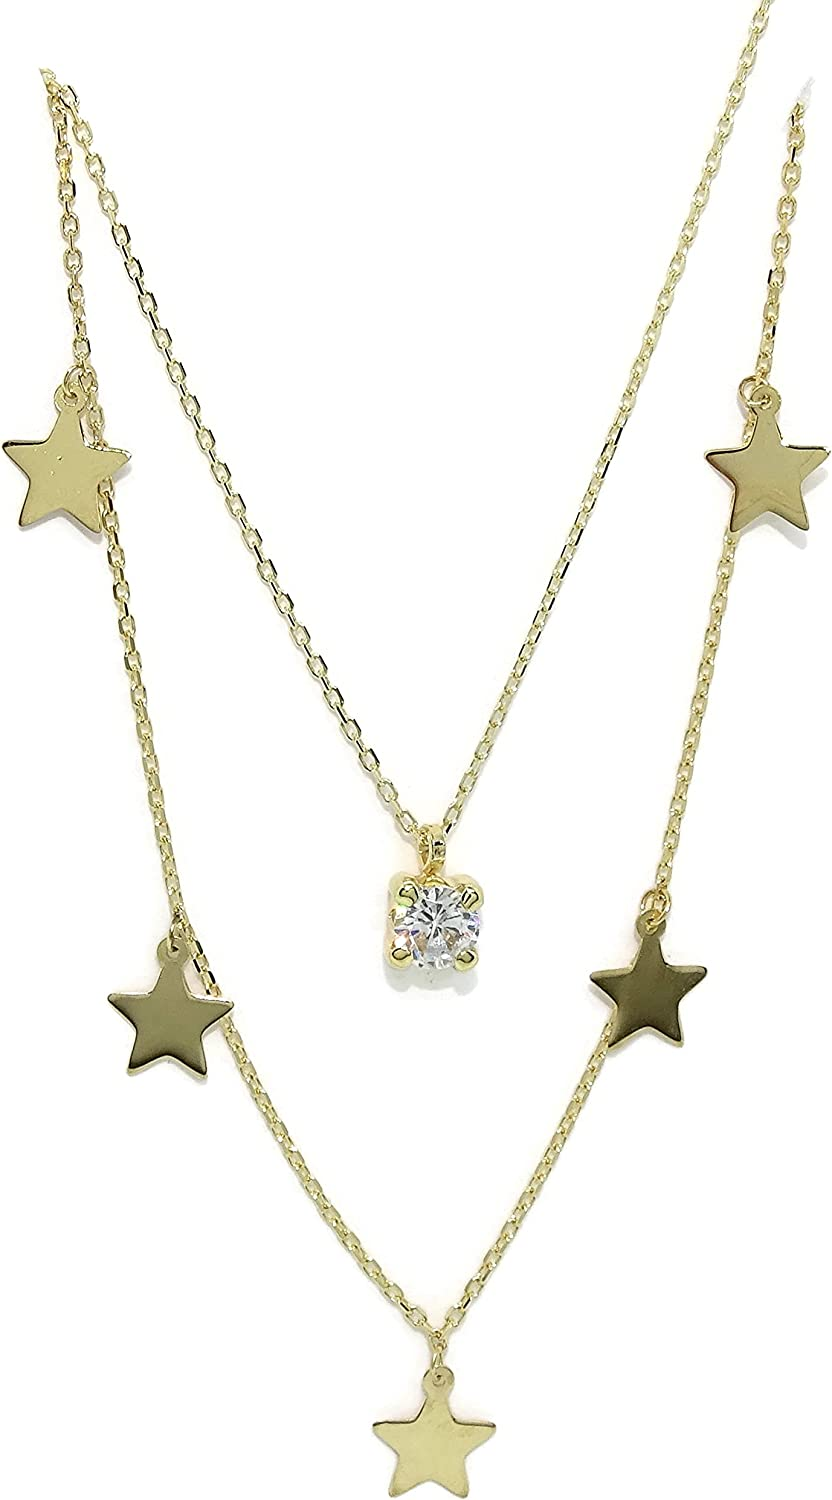 18K Gold Stars Collar Necklace for Women | Zirconia Solitaire Dangle Pendant Charm | Double Chain 45 cm long | 2.20 grams Real Gold | Never say Never Italian Fine Jewelry | Shiny Gift for Her